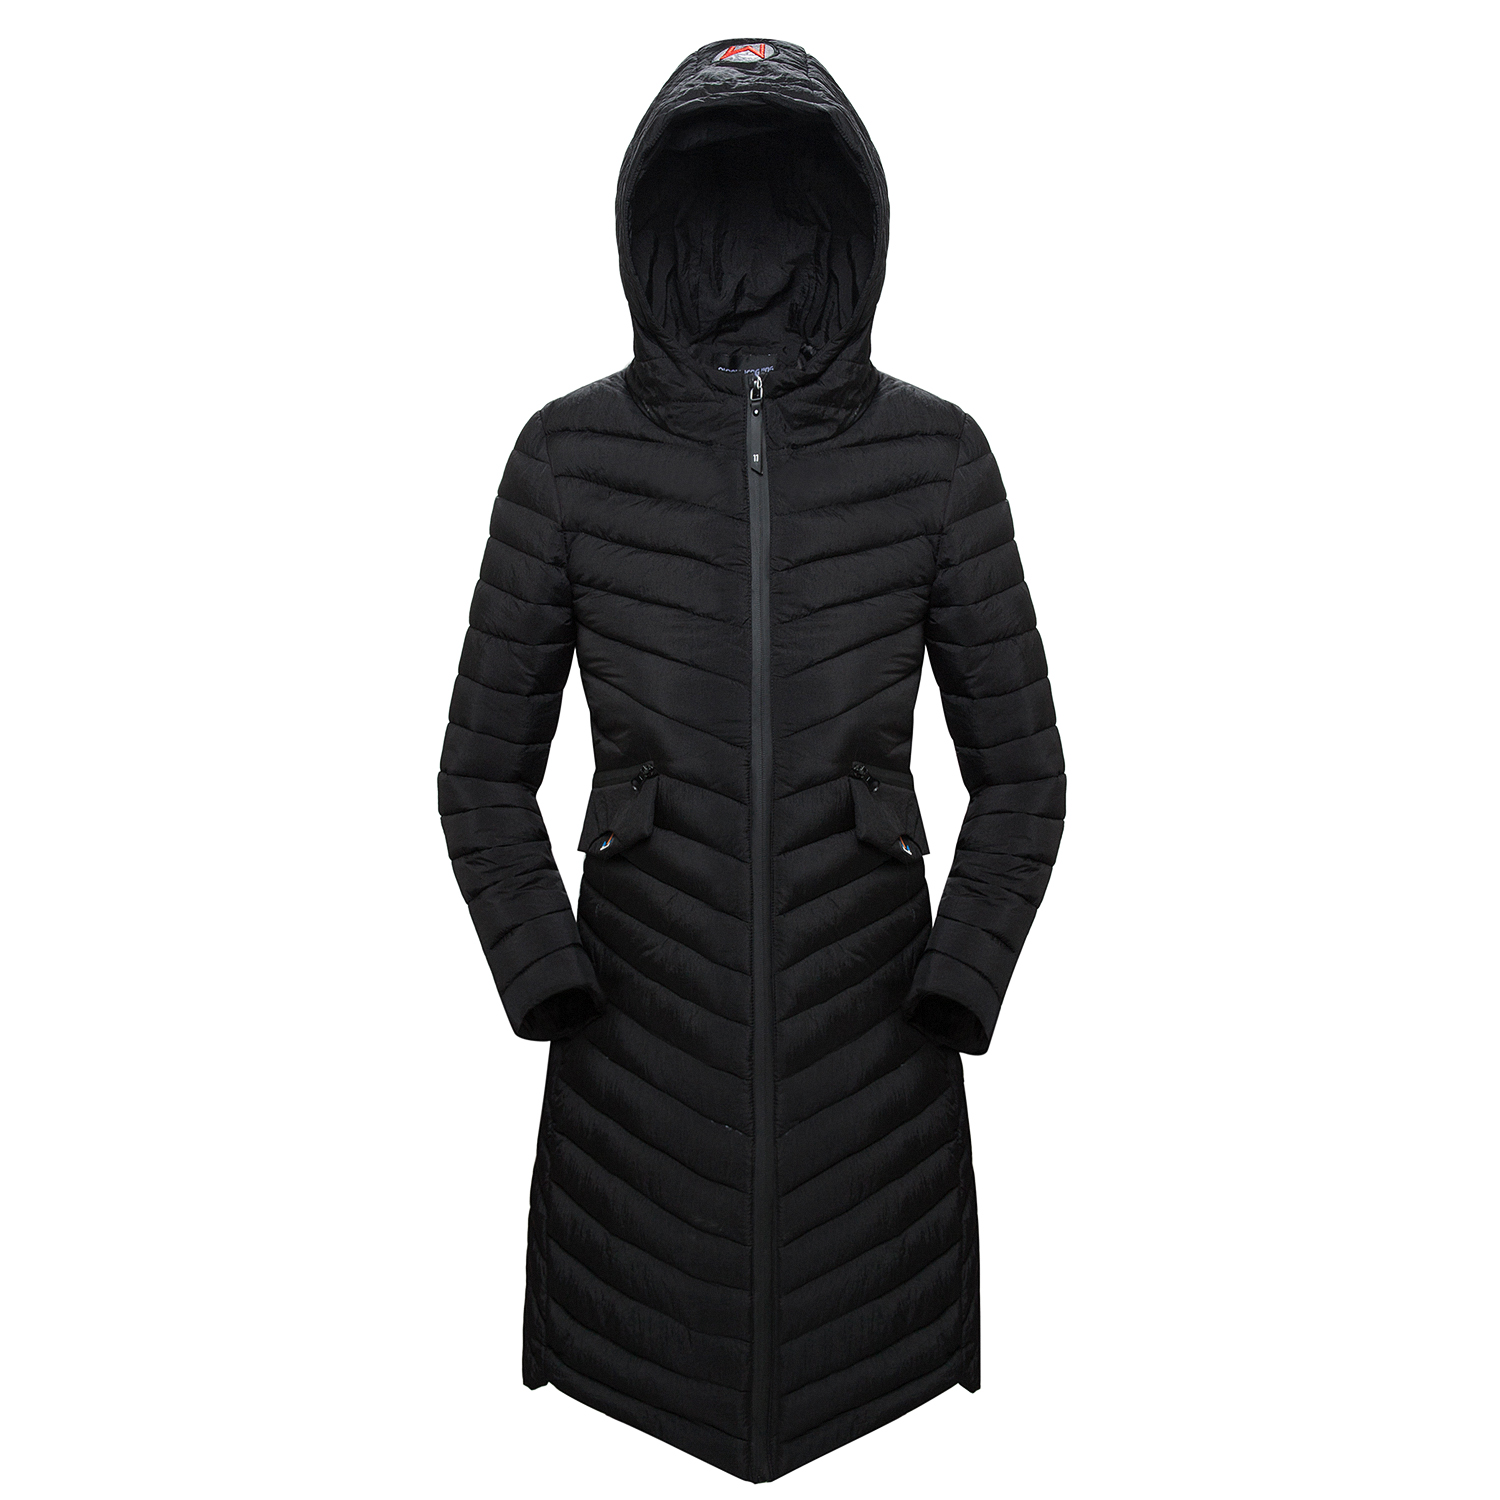 2017 Winter New Fashion Cotton Long Jacket Women Hooded Parka Thick Warm Slim Padded Coat Female Outerwear Hot Sale Plus Size 2016 new winter warm wadded coat women slim hooded down parka ladies plus size thick cotton padded jacket women outerwear kl0471